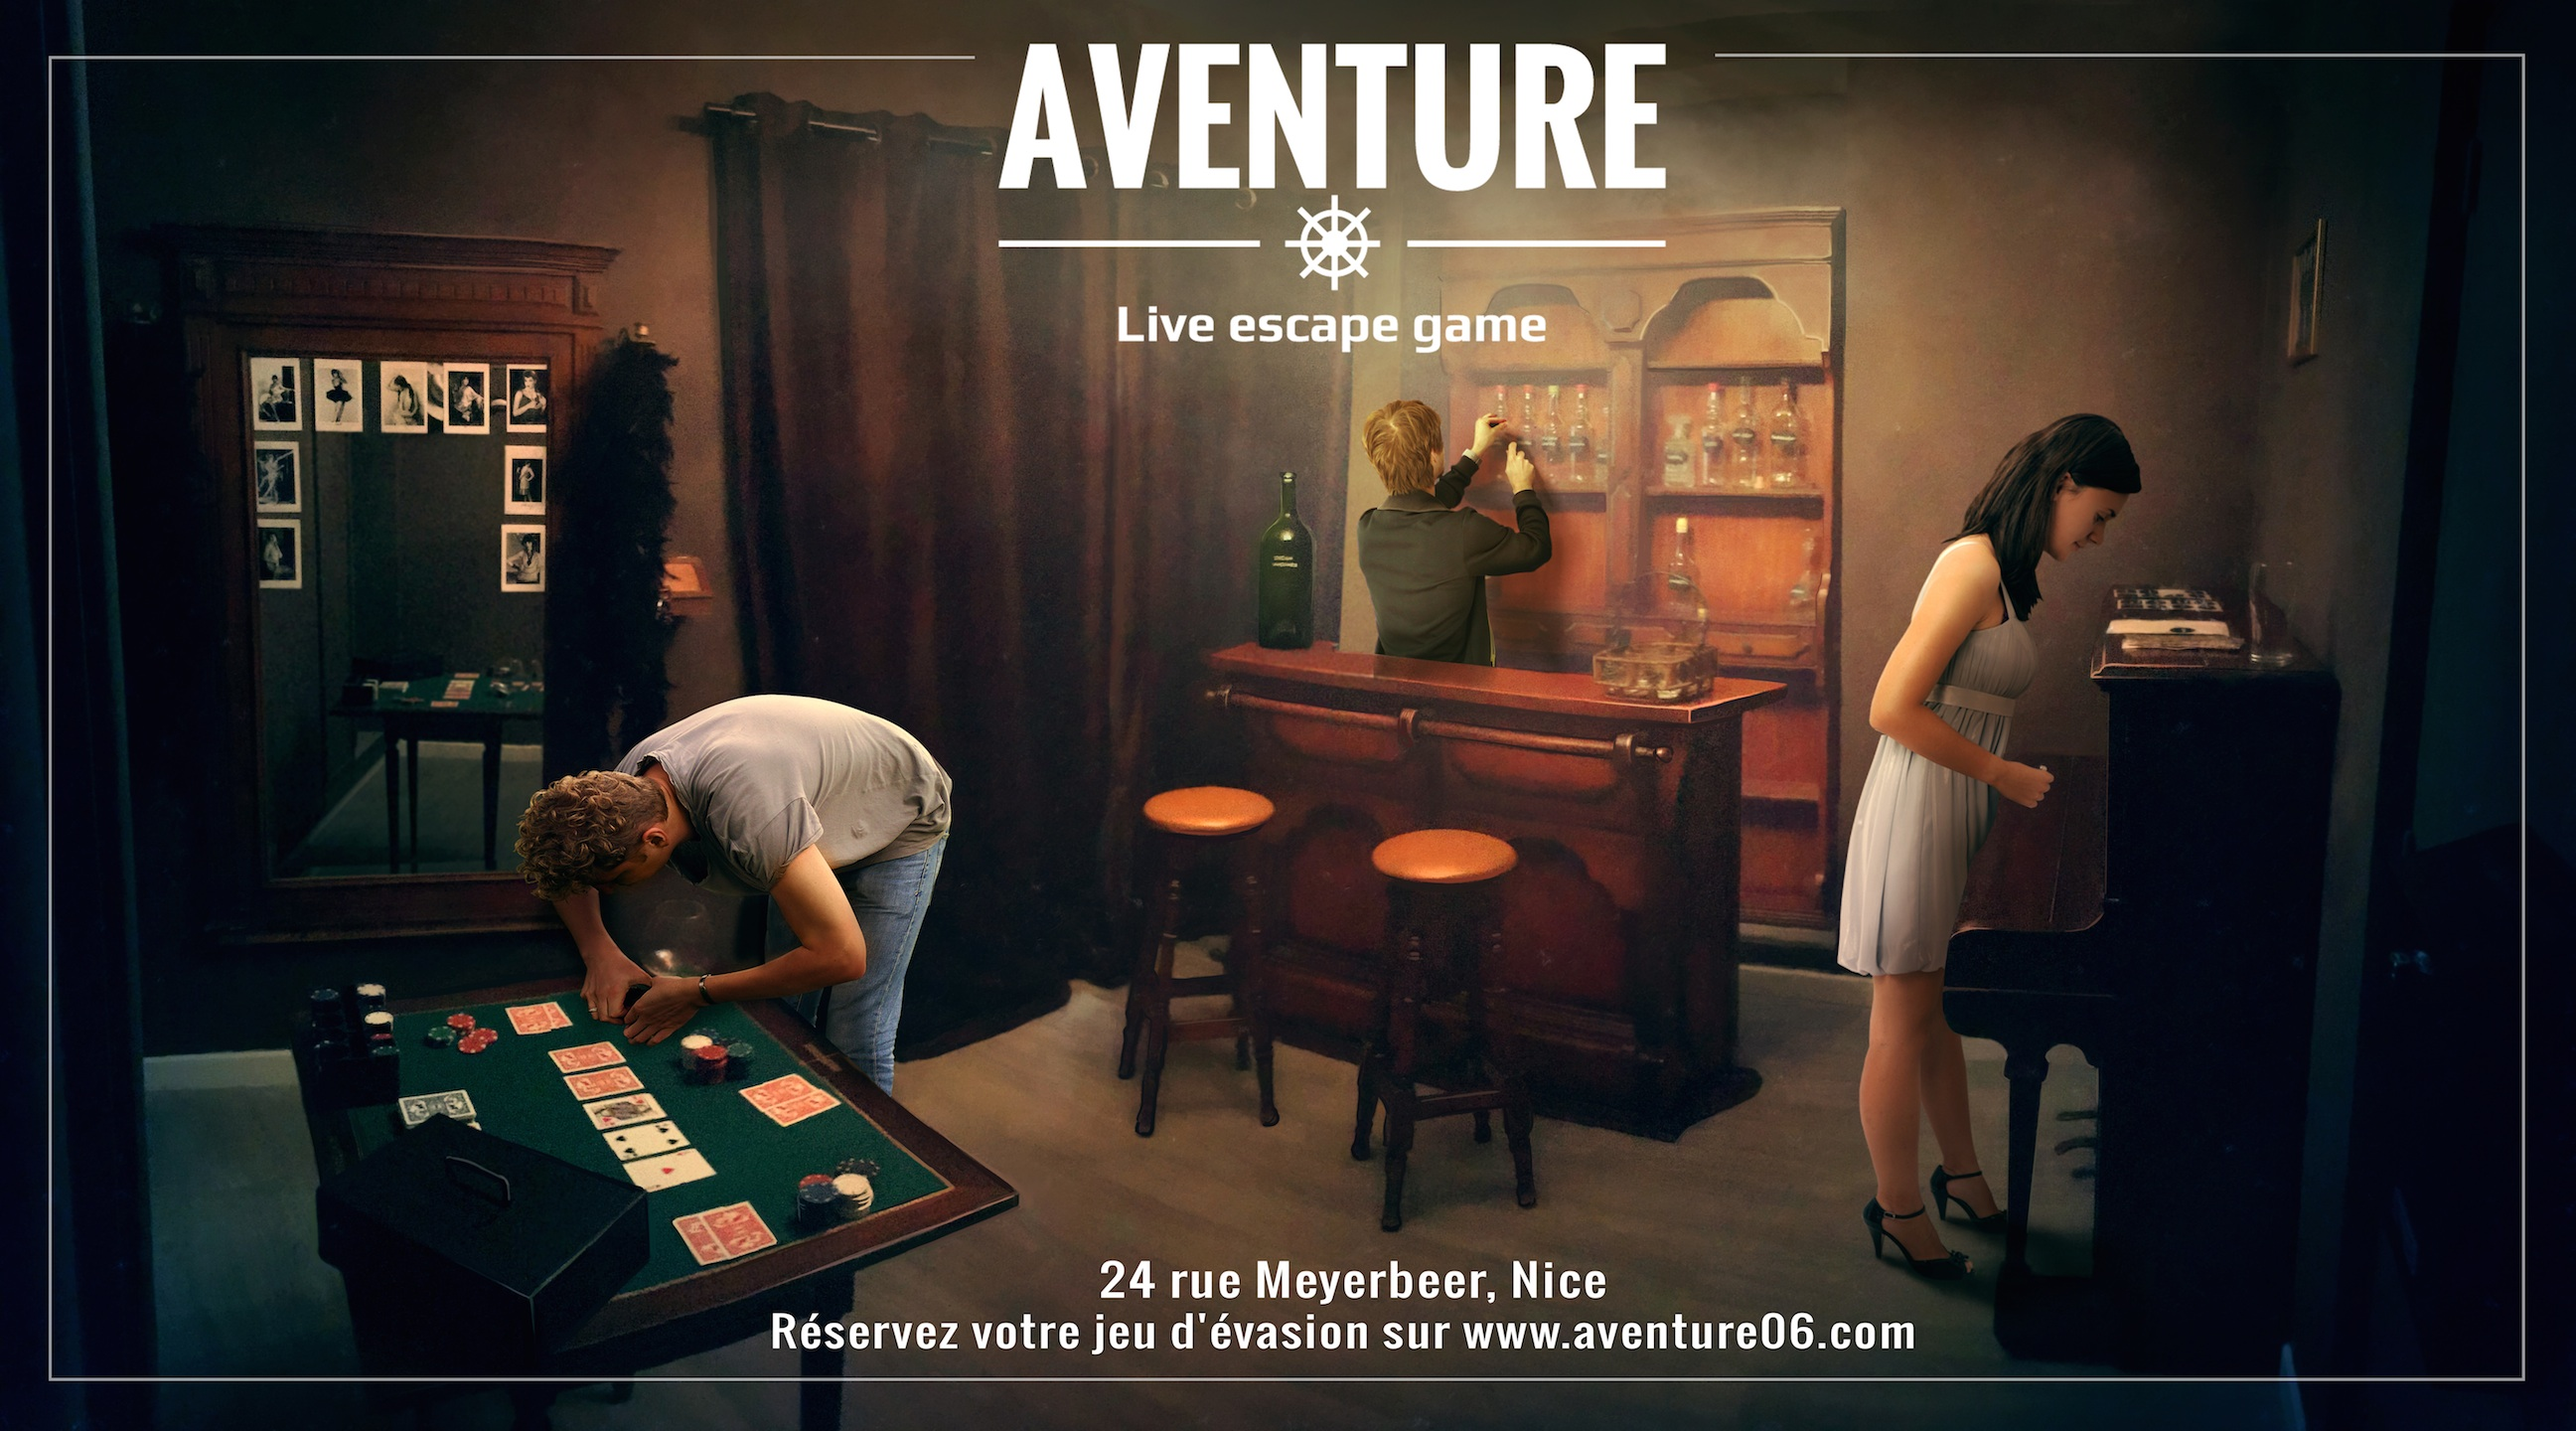 aventure nice la carte des escape game